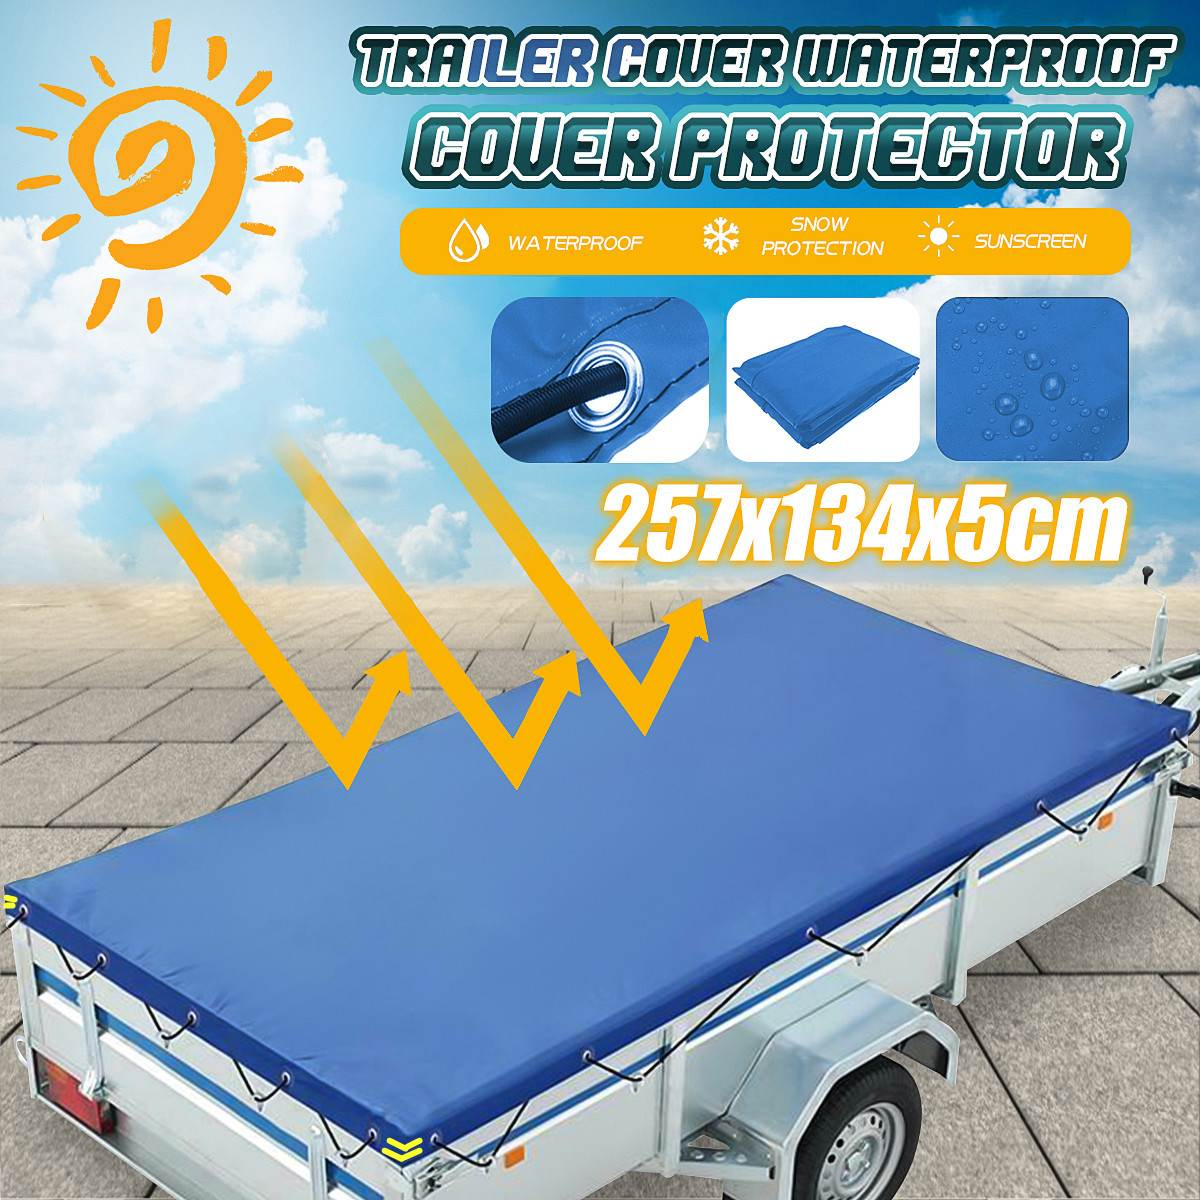 Foldable Trailer Cover Outdoor Travel Camper Waterproof Windproof Dustproof Protective Cover Tarp Ca